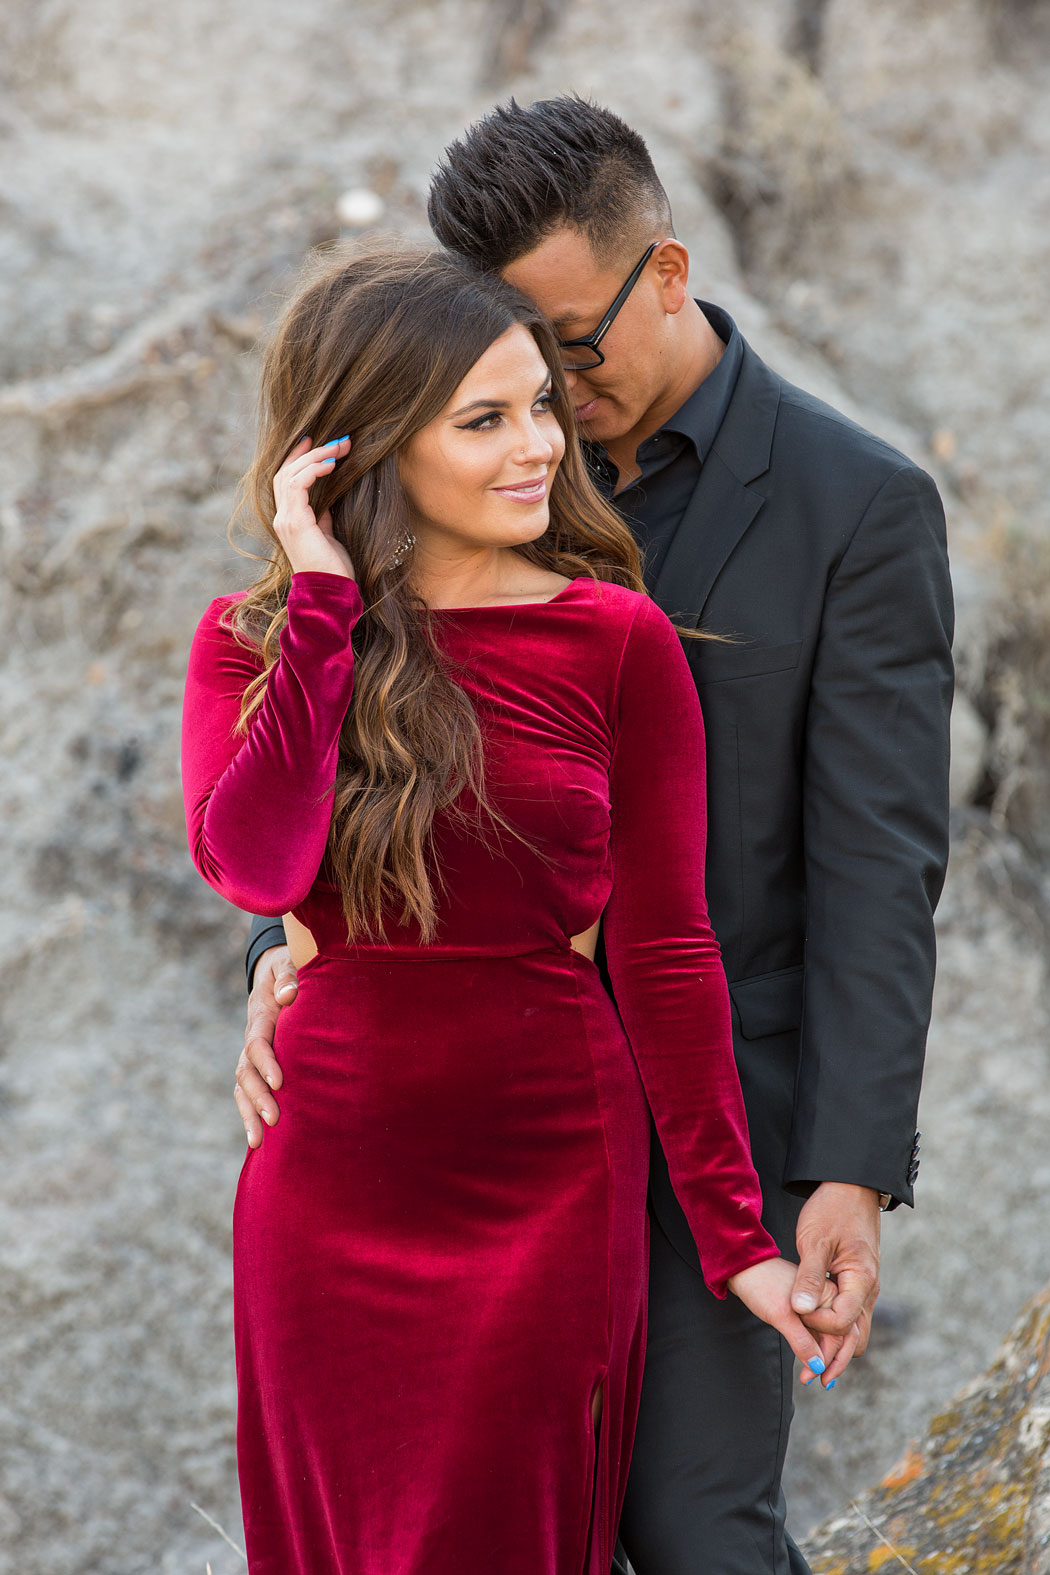 Couples_Red_Dress_Love_Drumheller